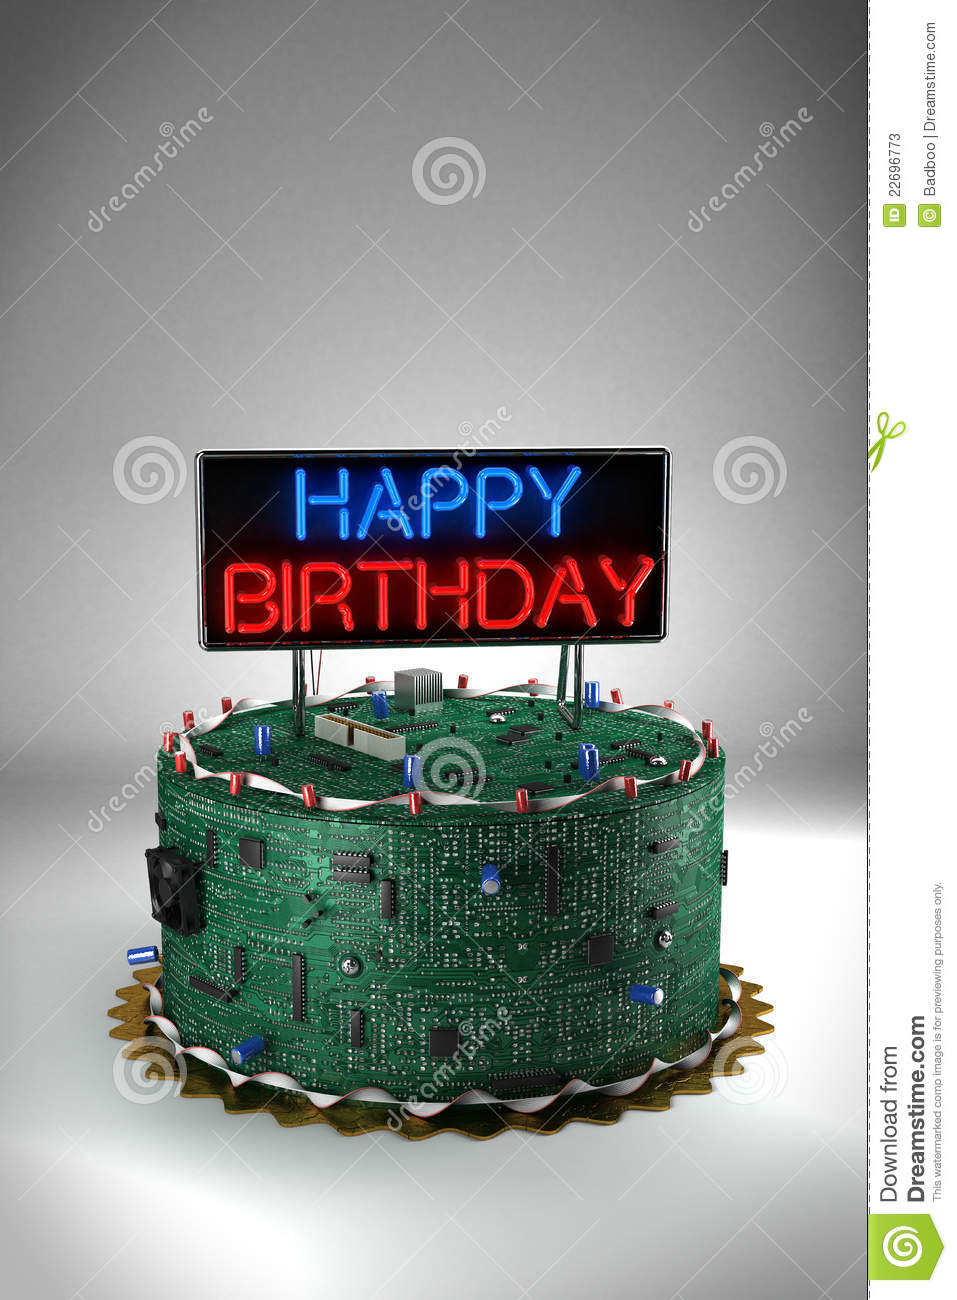 Birthday Cake For Geeks Stock Illustration Illustration Of Computer